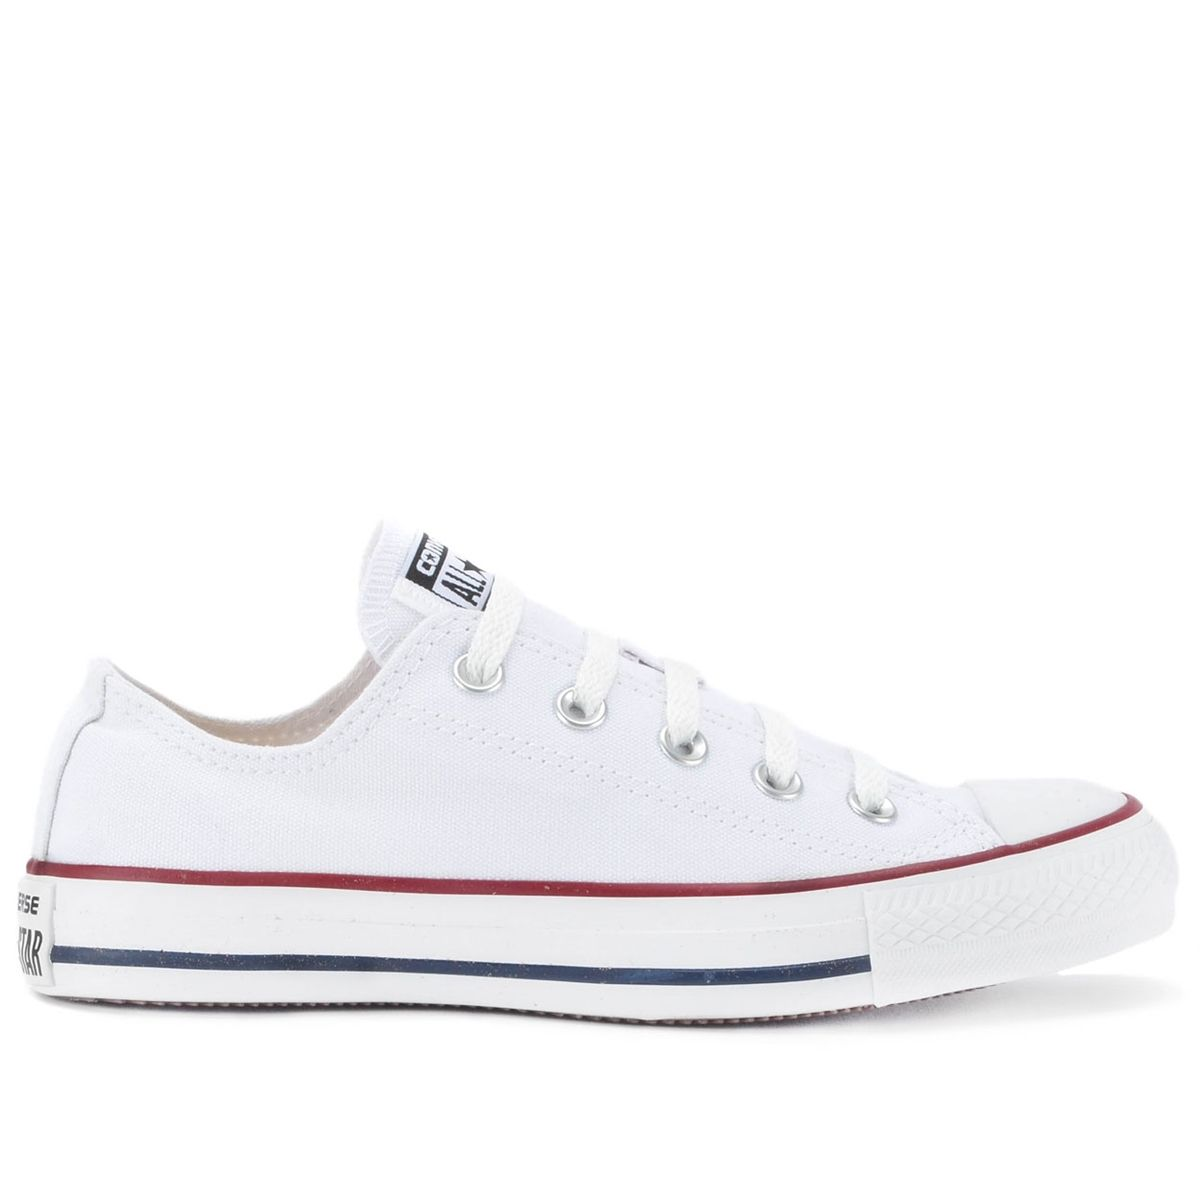 334fecc9e Pin by Eviro on Wholesale Converse All star in 2019 | Converse shoes ...